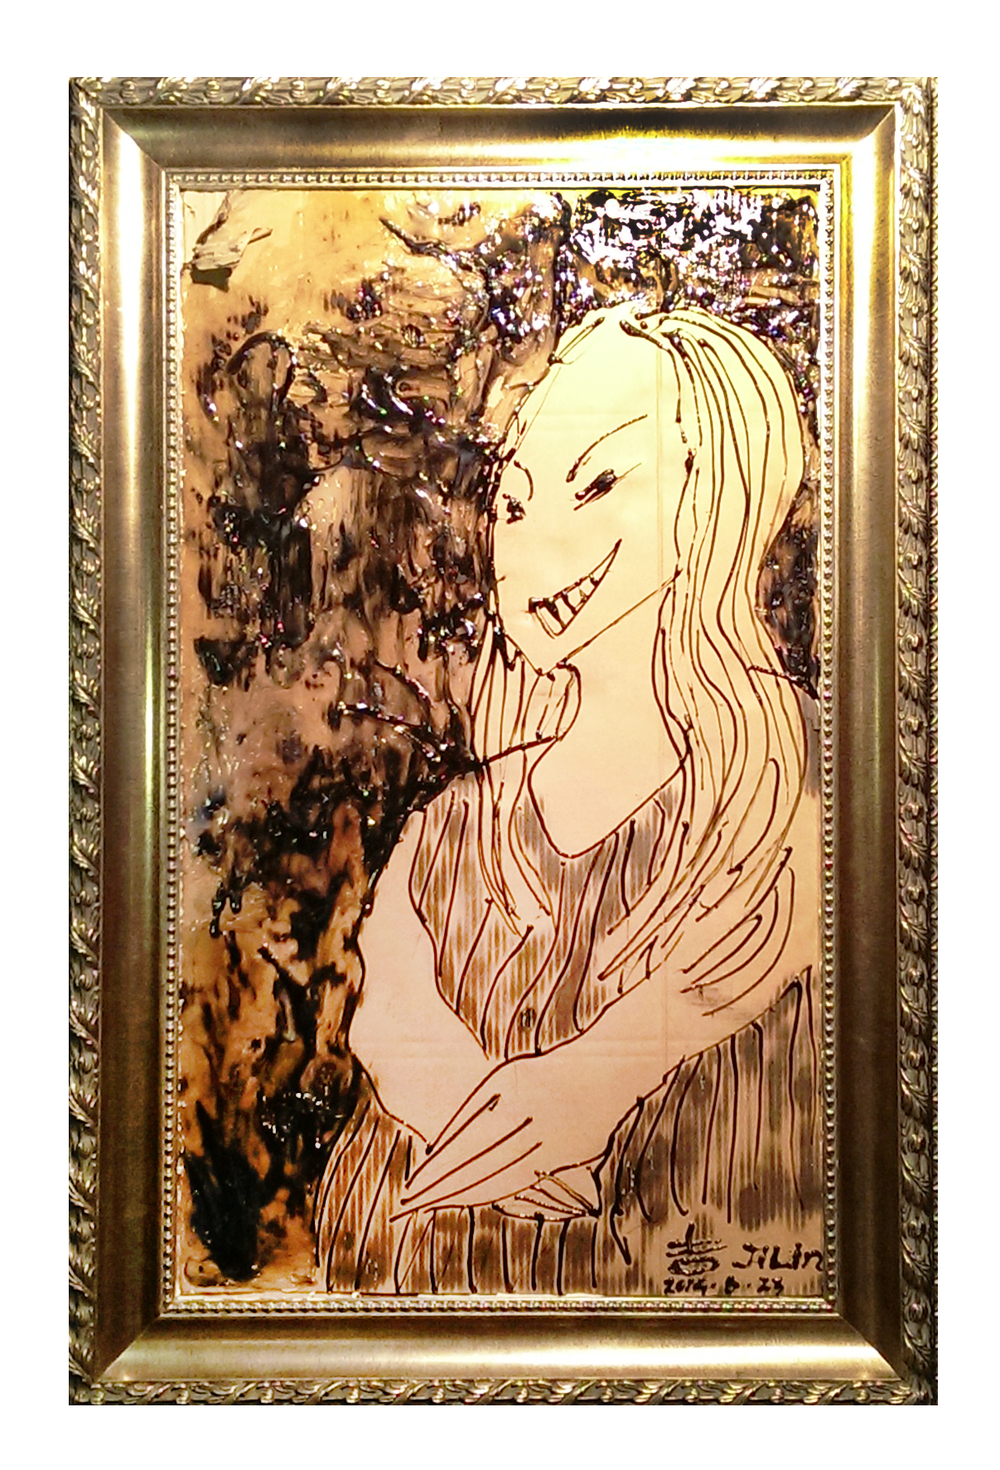 <Mona Lisa>  530*760mm  May,2015  Hot Glue